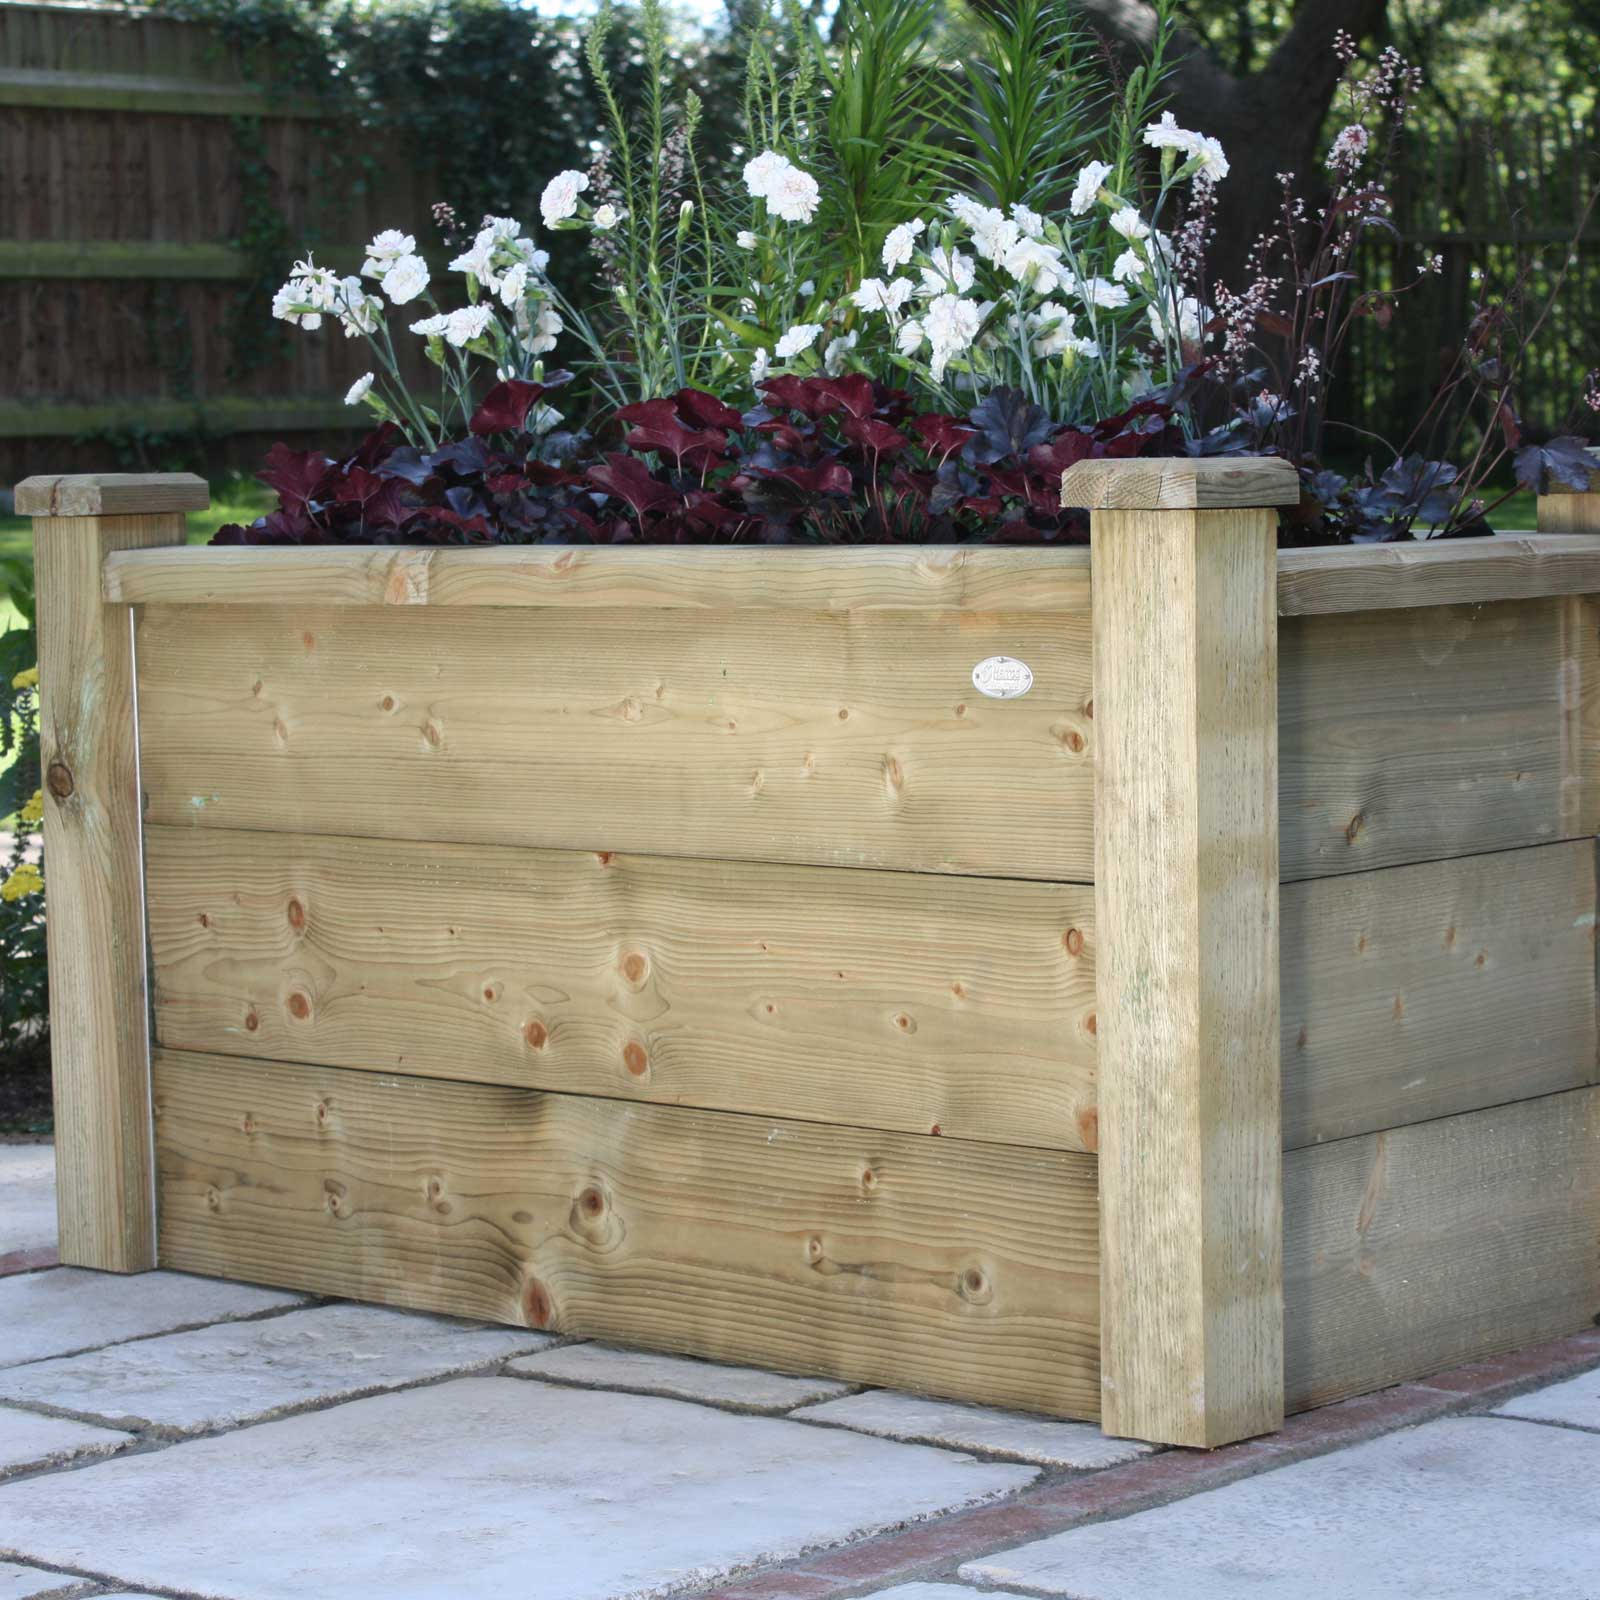 Made To Measure Bespoke Wooden Planters: Rectangle Wooden Planters